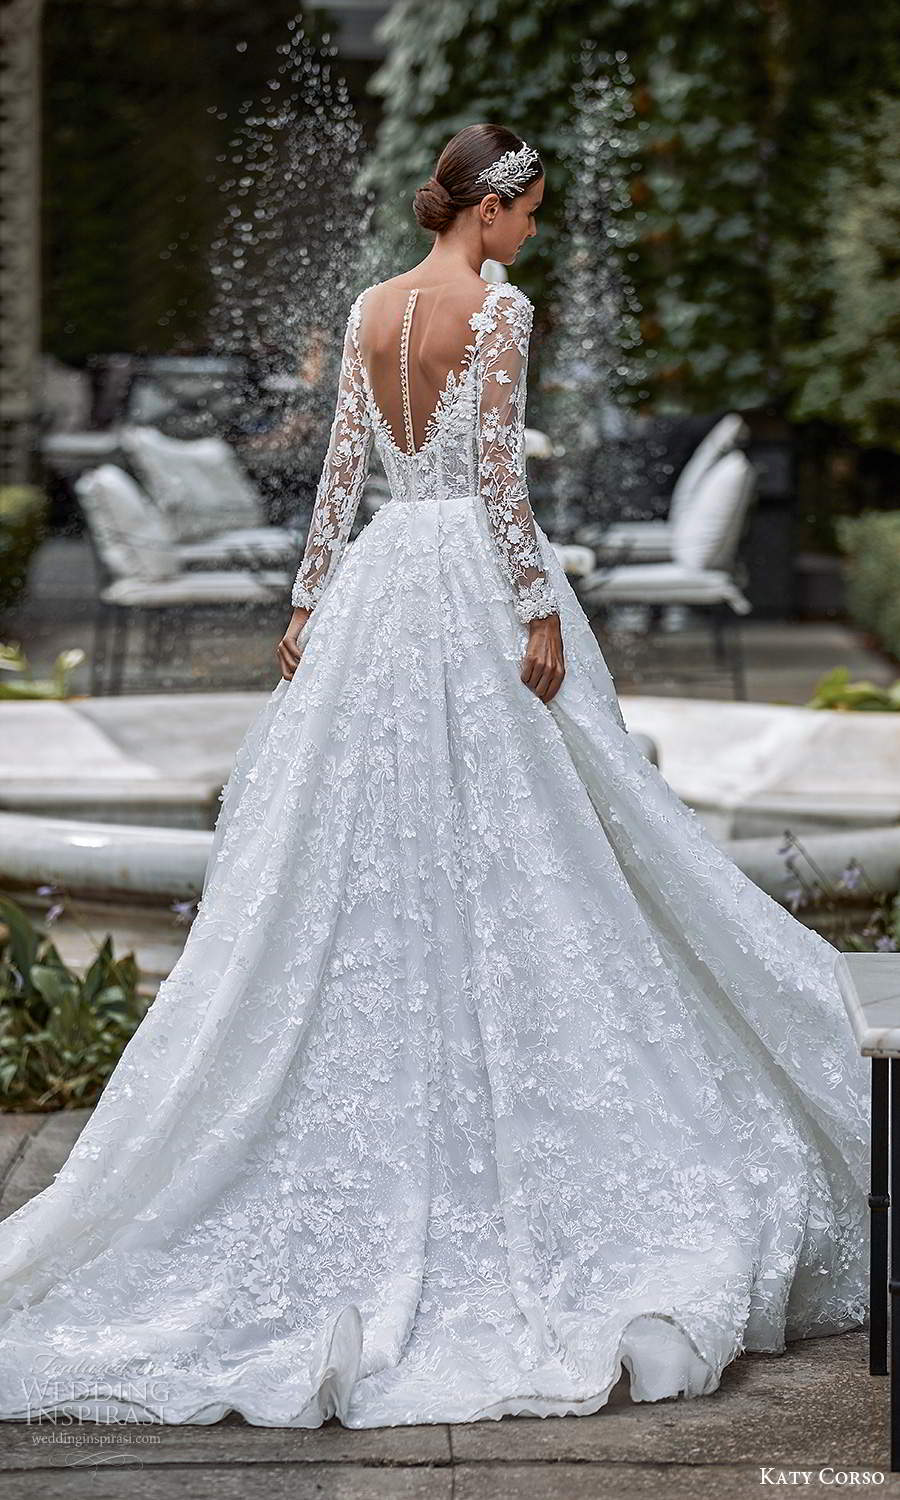 katy corso 2021 bridal illusion long sleeves sweetheart neckline fully embellished a line ball gown wedding dress chapel train (18) bv